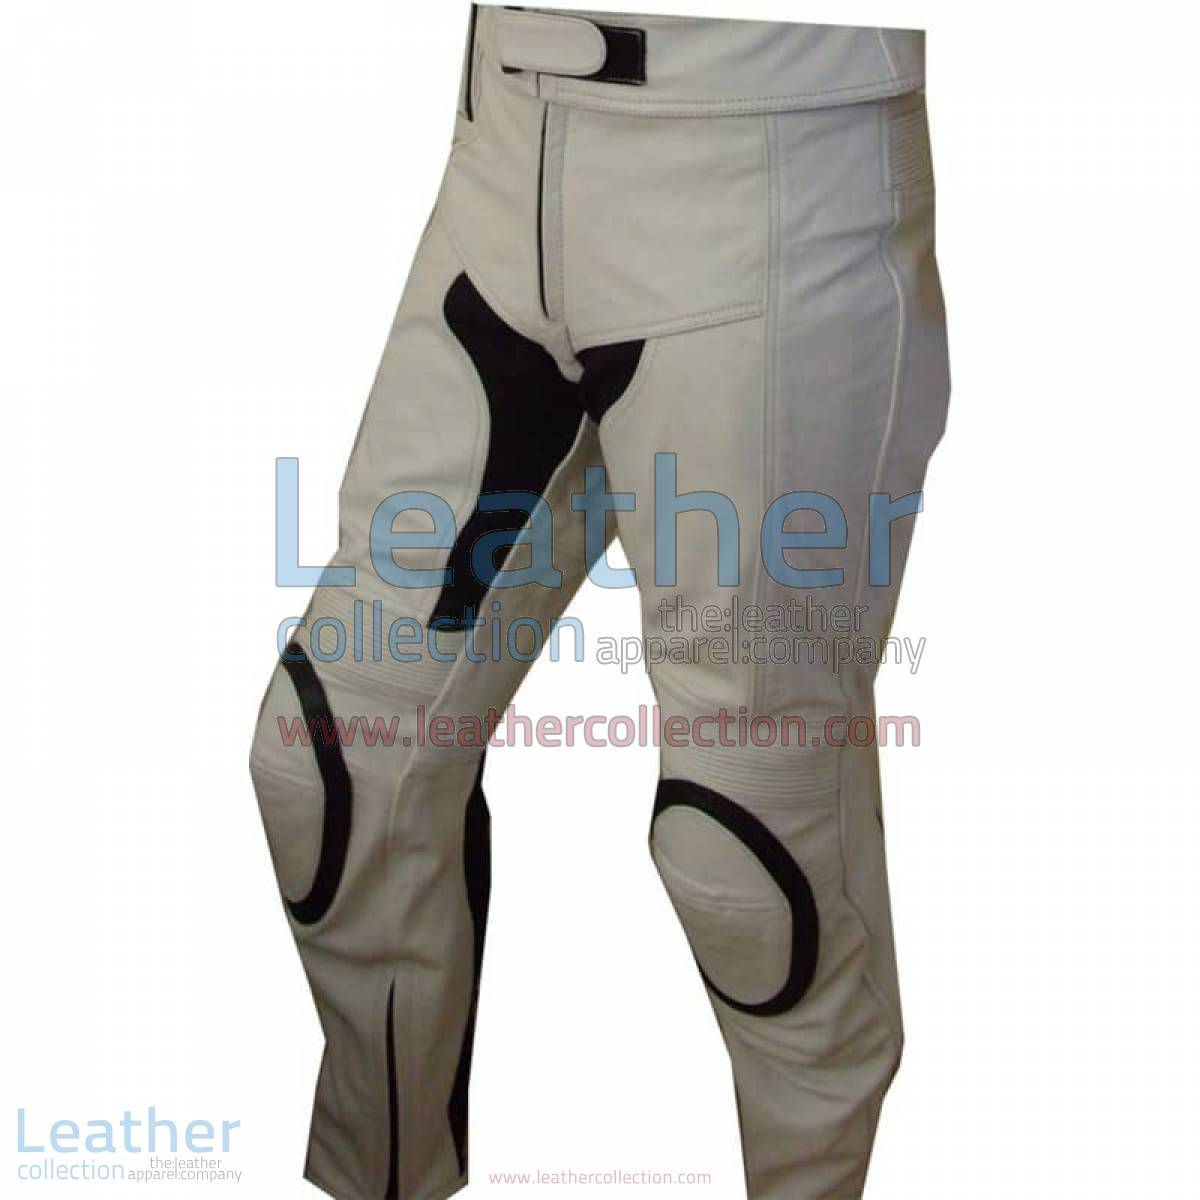 White Motorcycle Pants | white motorcycle pants